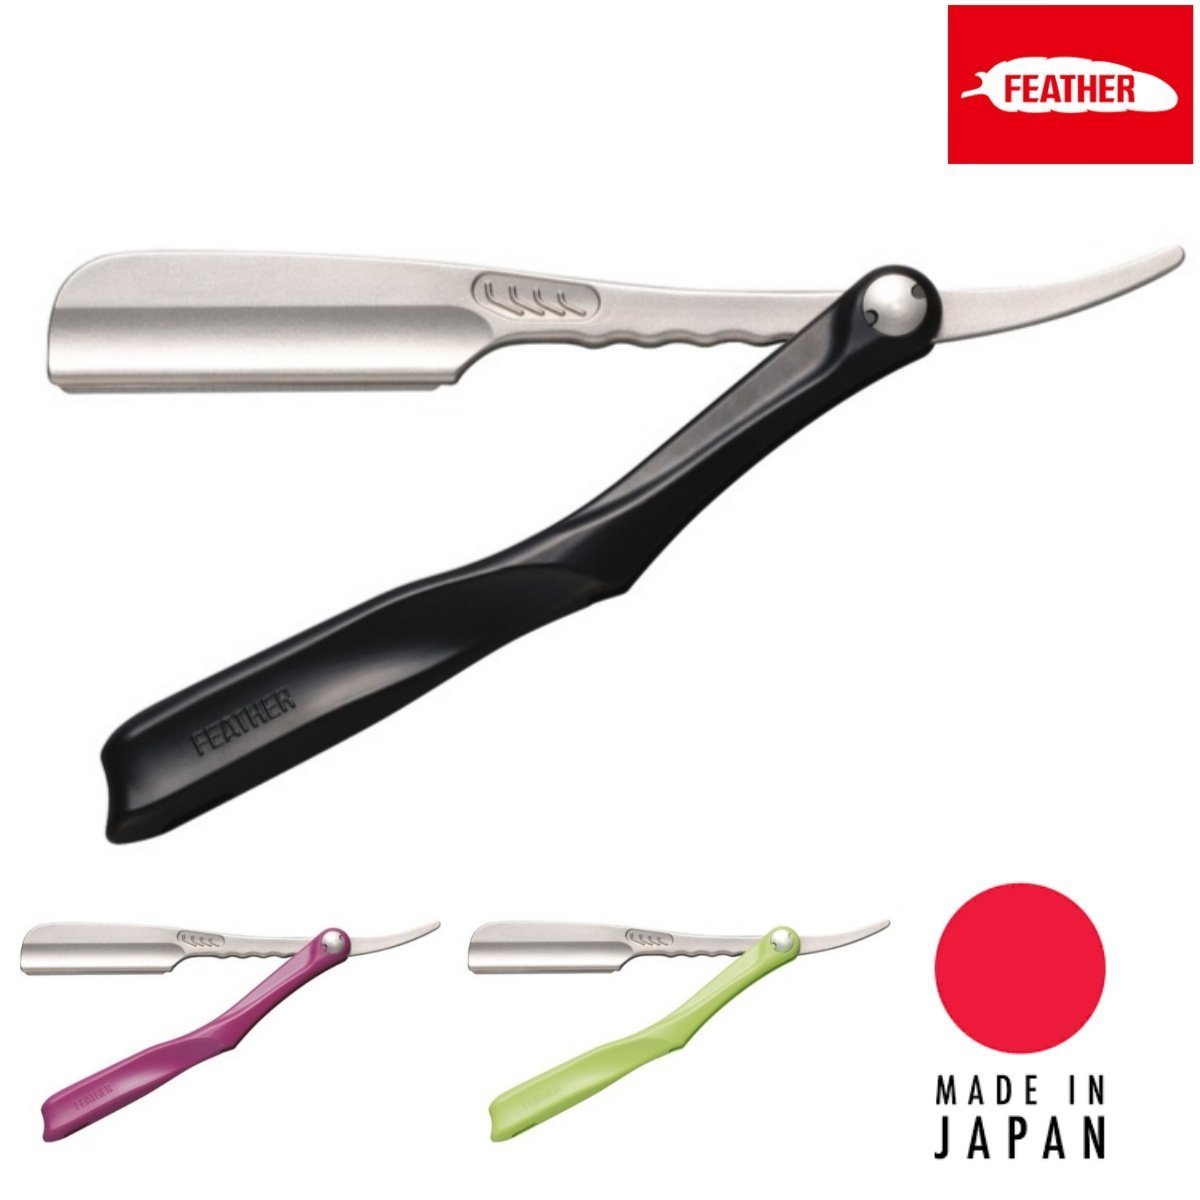 Feather Japan Artist Club SS Folding Razor - Japan Scissors